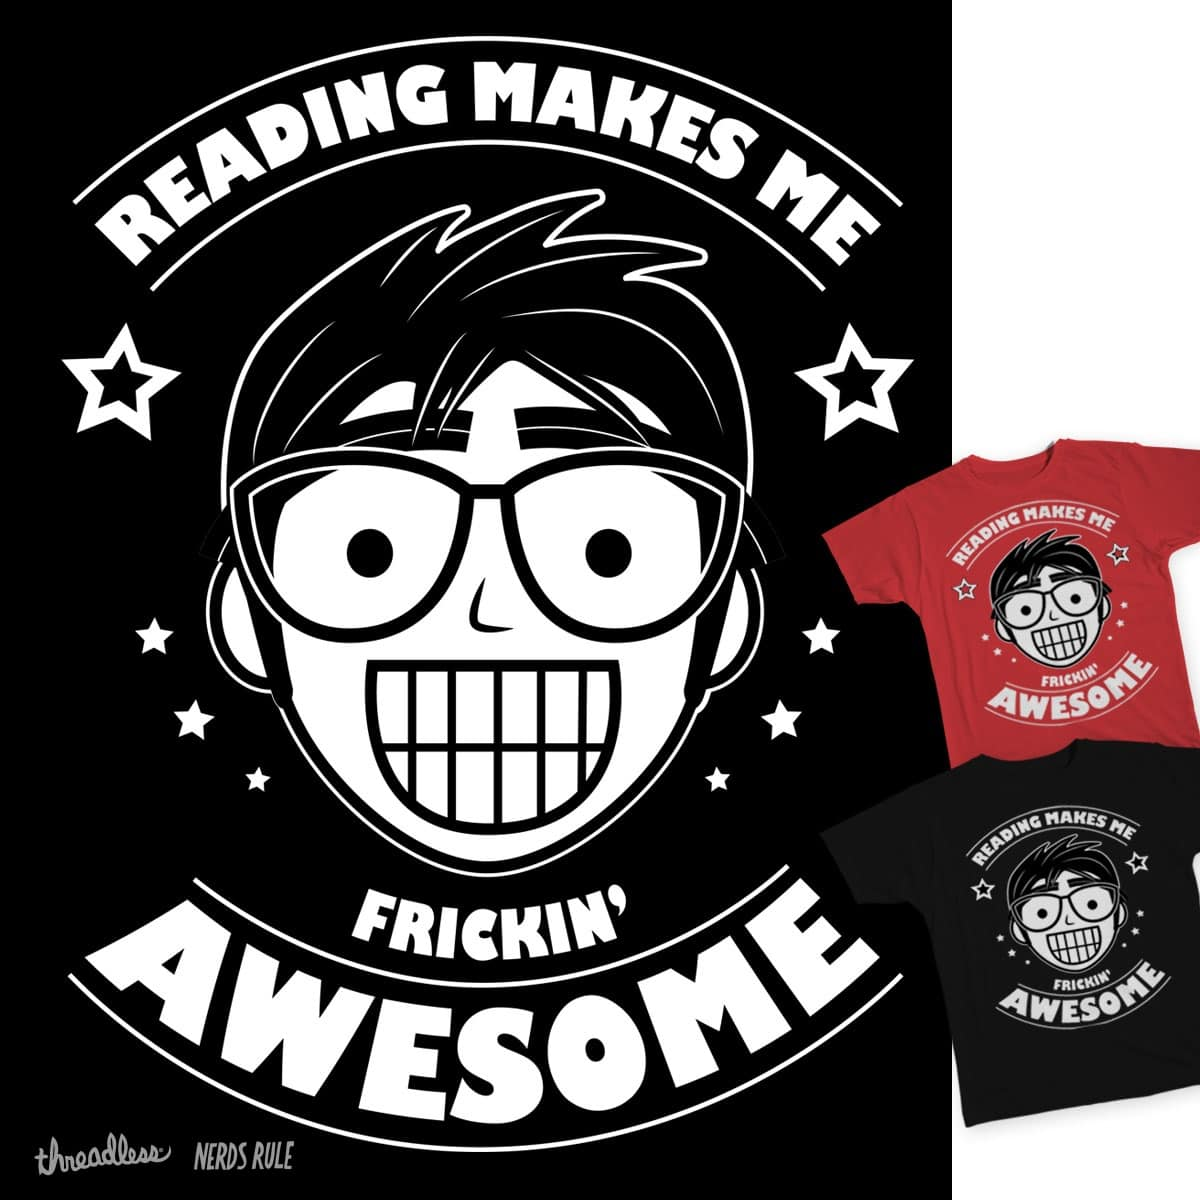 Reading Makes Me Awesome by treemanjake on Threadless